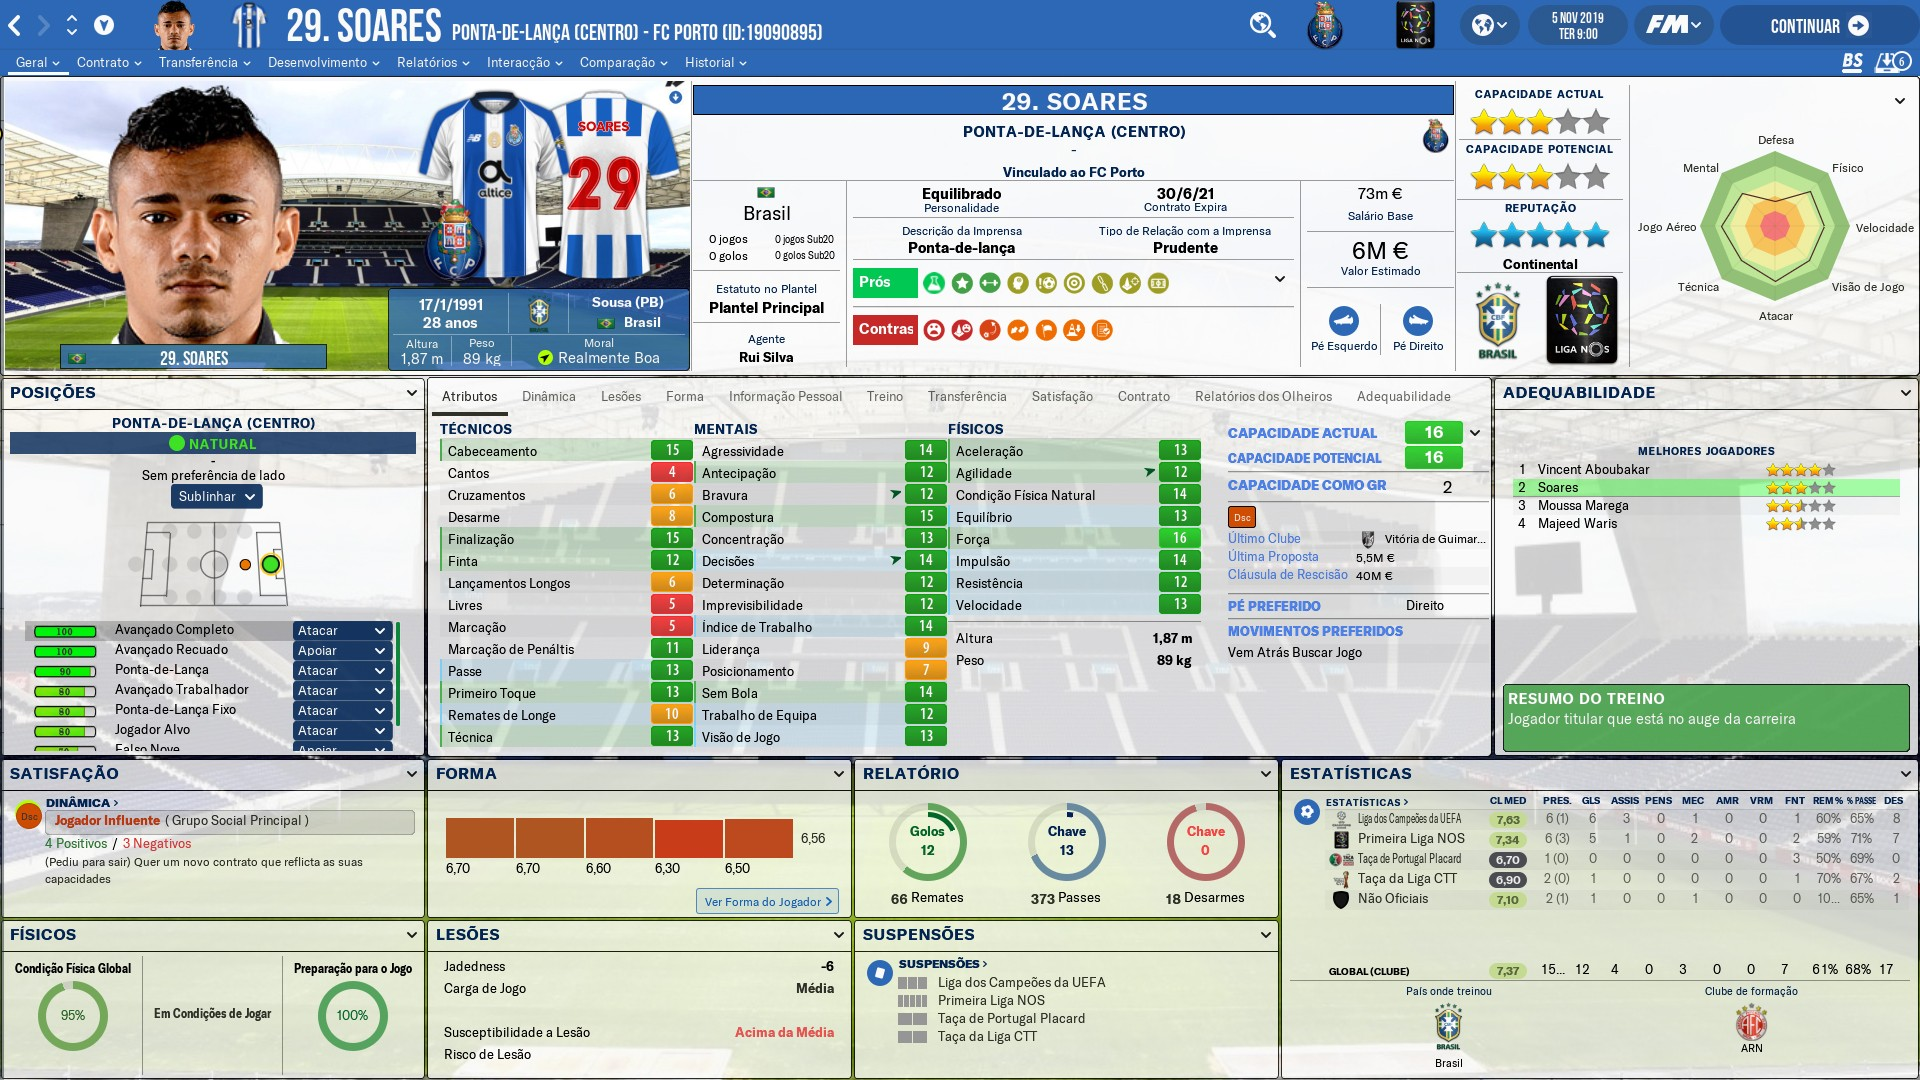 Football Manager 2019 Skins - FM 2019 FLUT skin light - Version 1.1